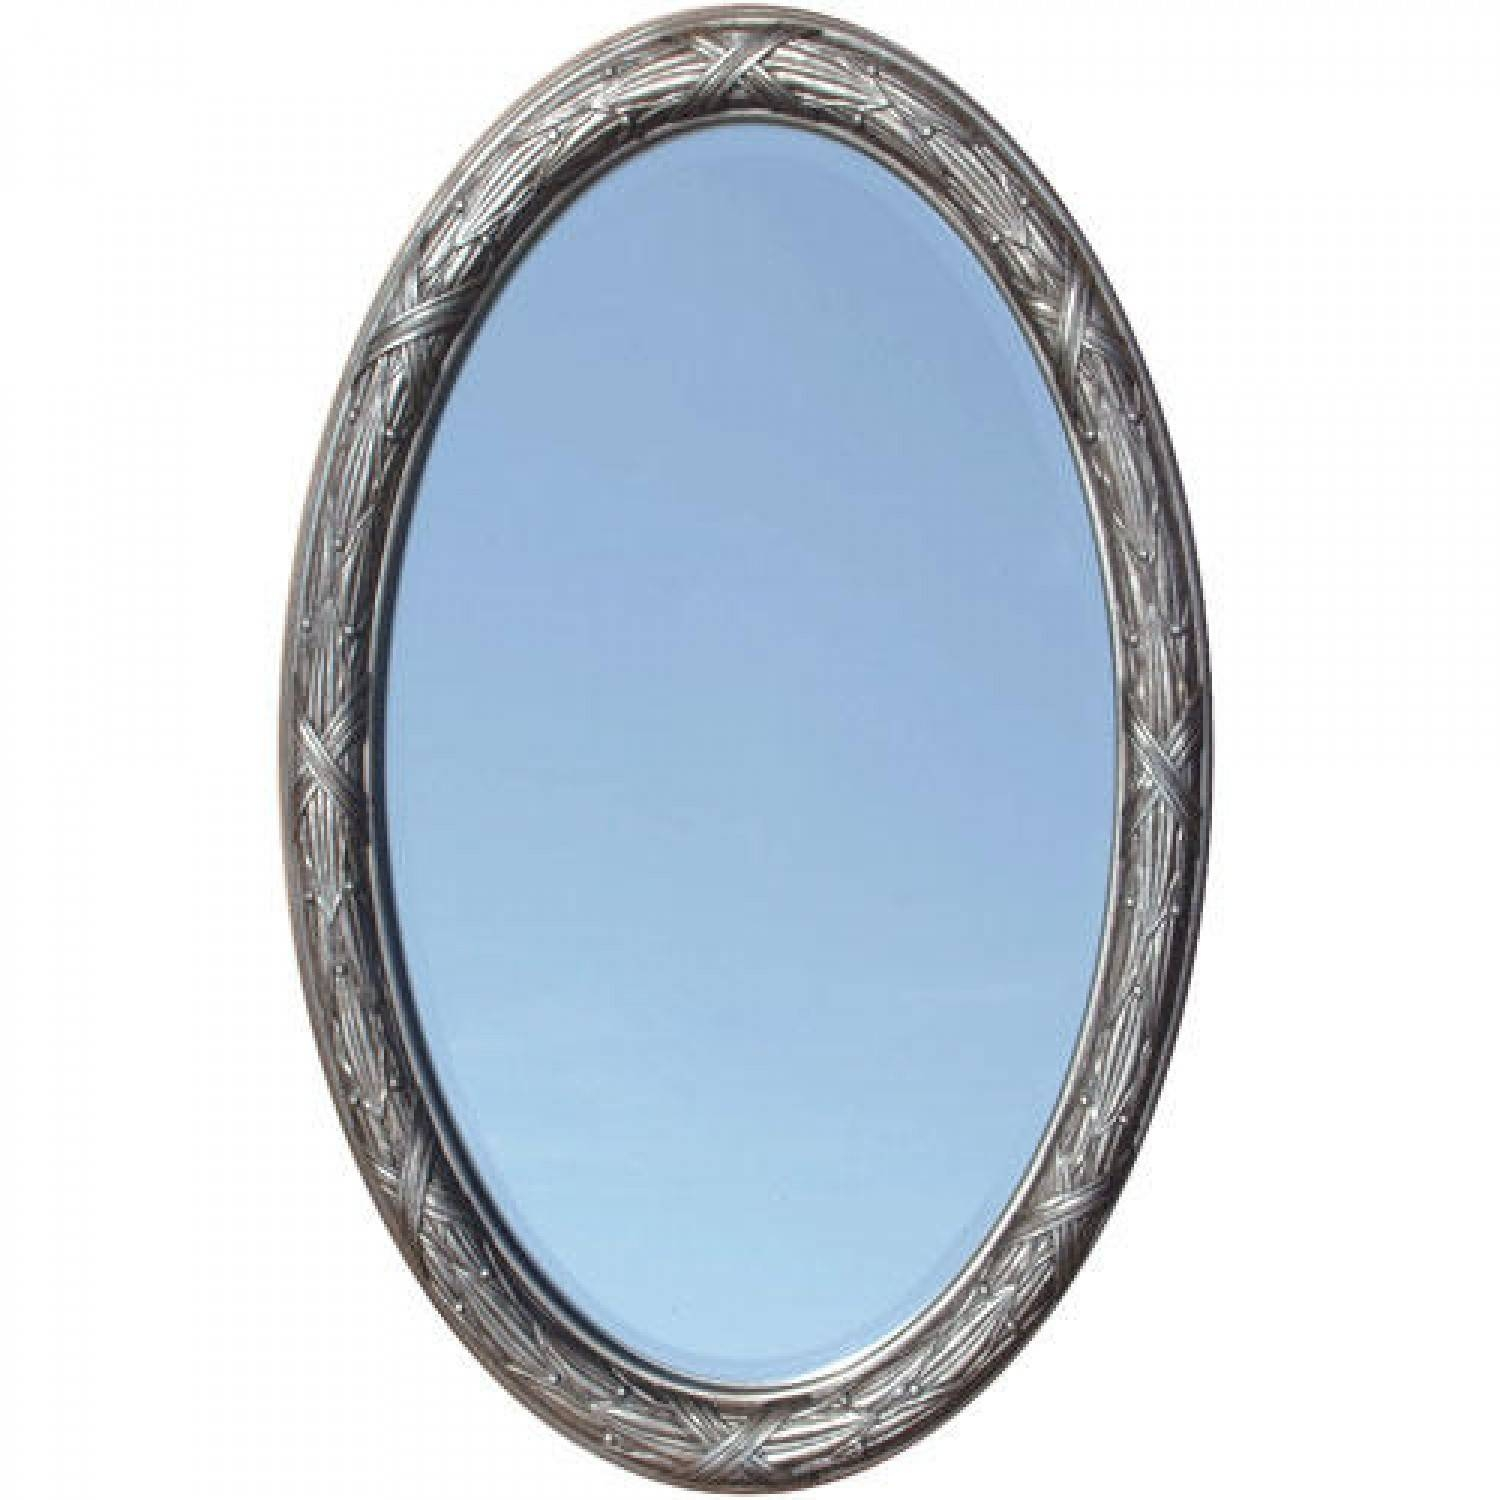 Corinthian Decorative Beveled Oval Mirror – Venetian Bronze – Bathroom Intended For Bevelled Oval Mirrors (View 13 of 15)